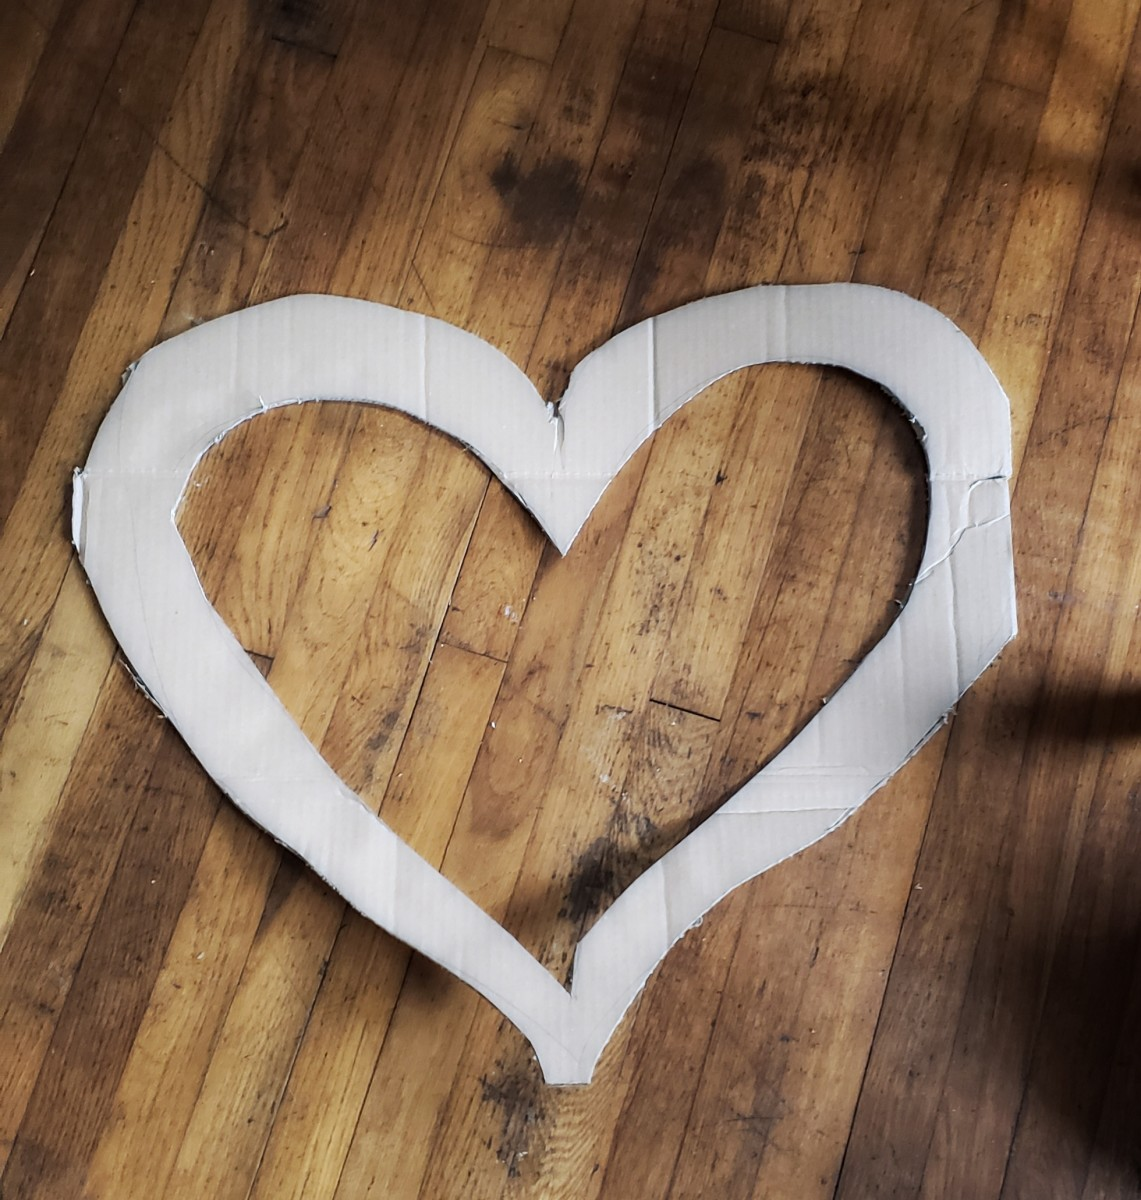 Cut out a smaller heart to create your cardboard heart wreath.